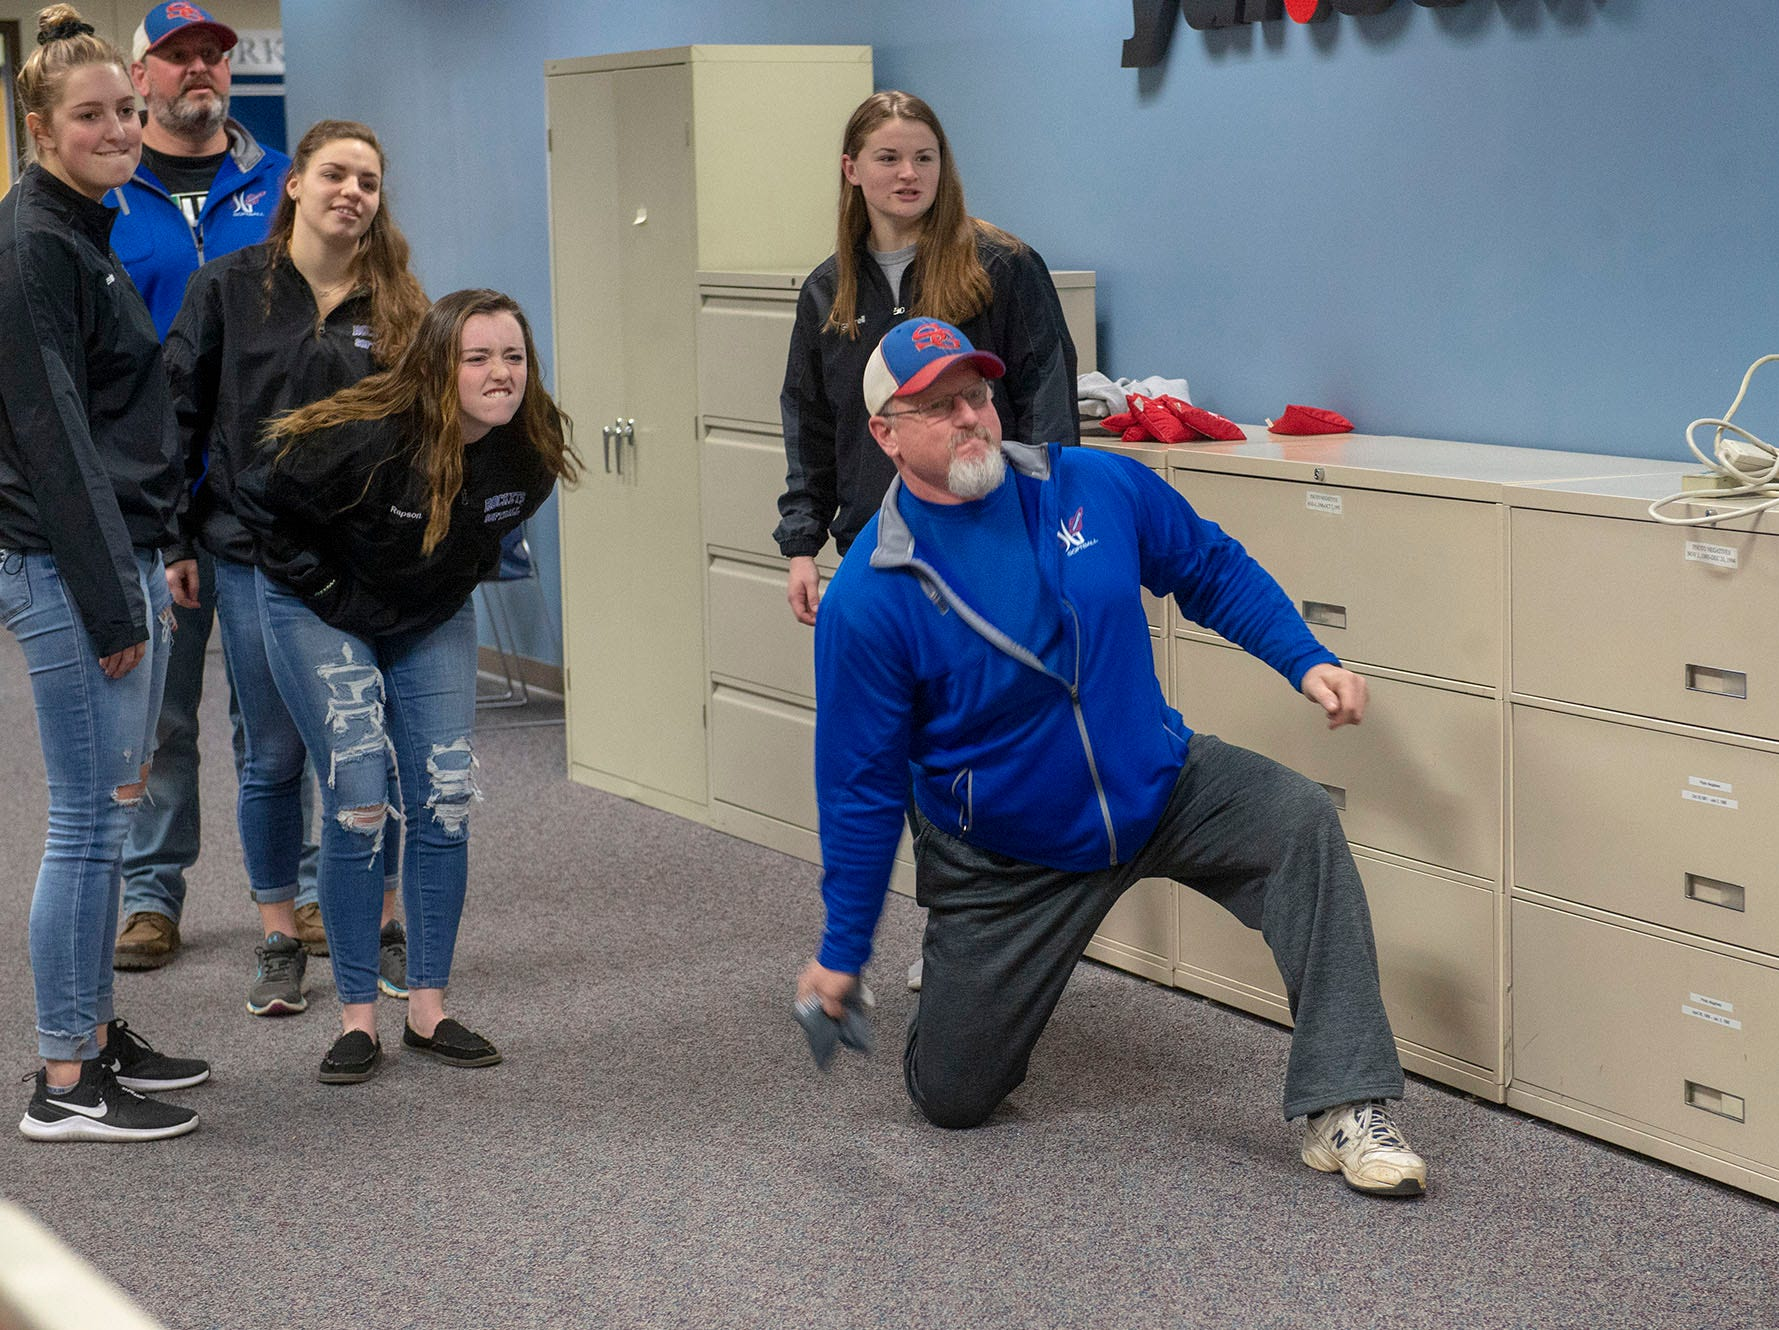 Trying to toss the beanbags about 45 feet brought at least one Spring Grove coach to his knees at GameTimePA's YAIAA Spring Media Day on Sunday, March 10, 2019.